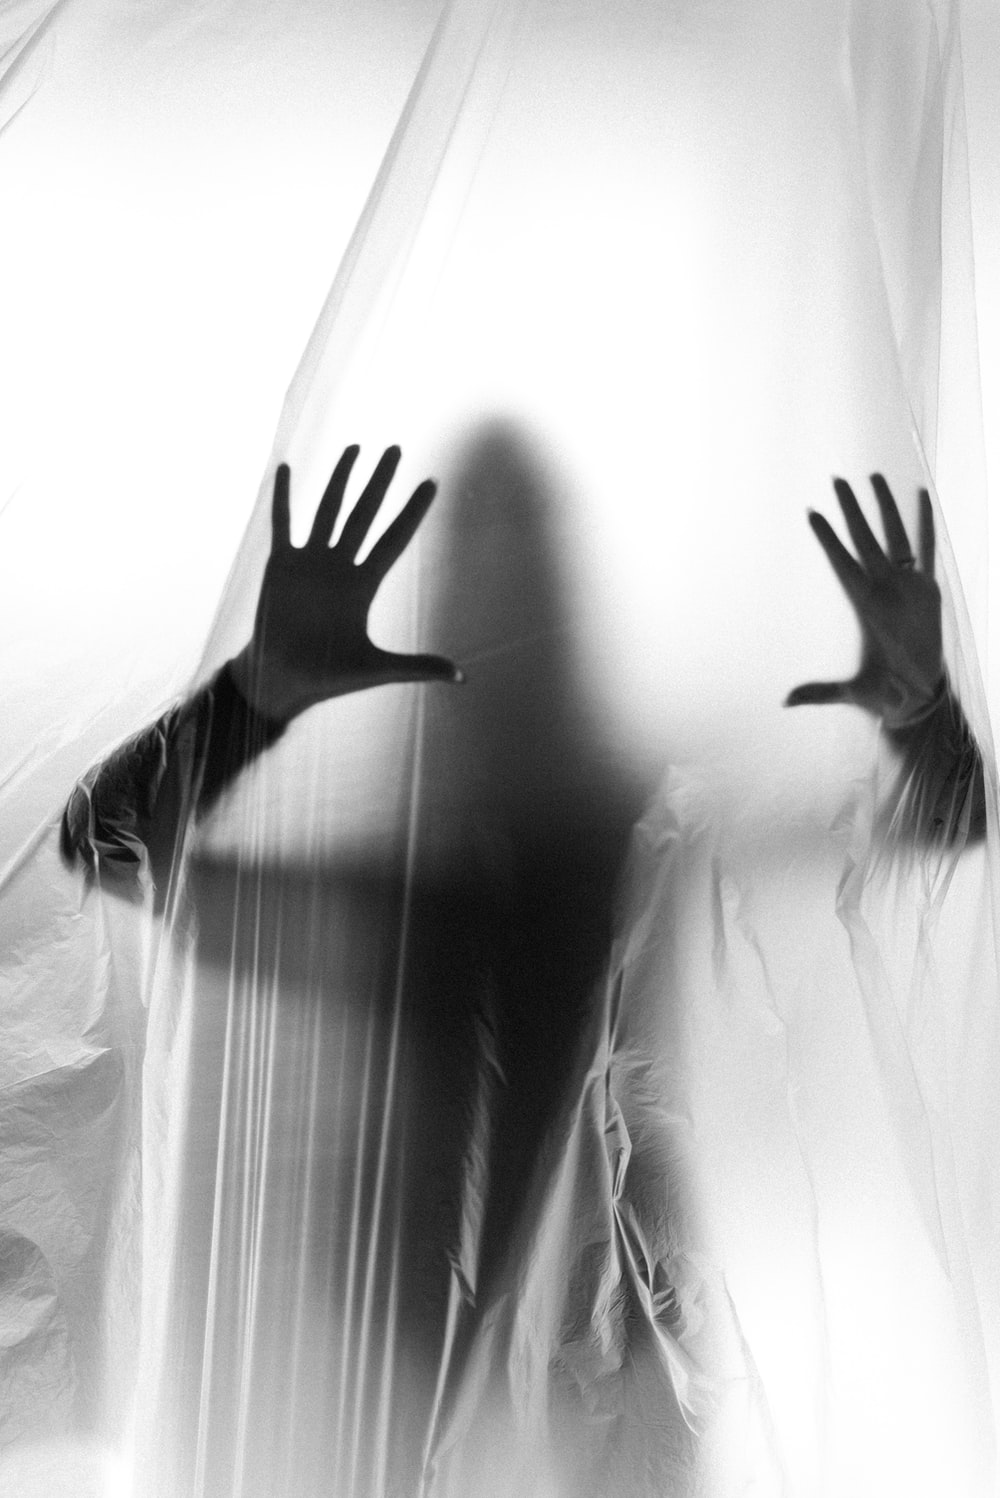 grayscale photo of woman raising her hands